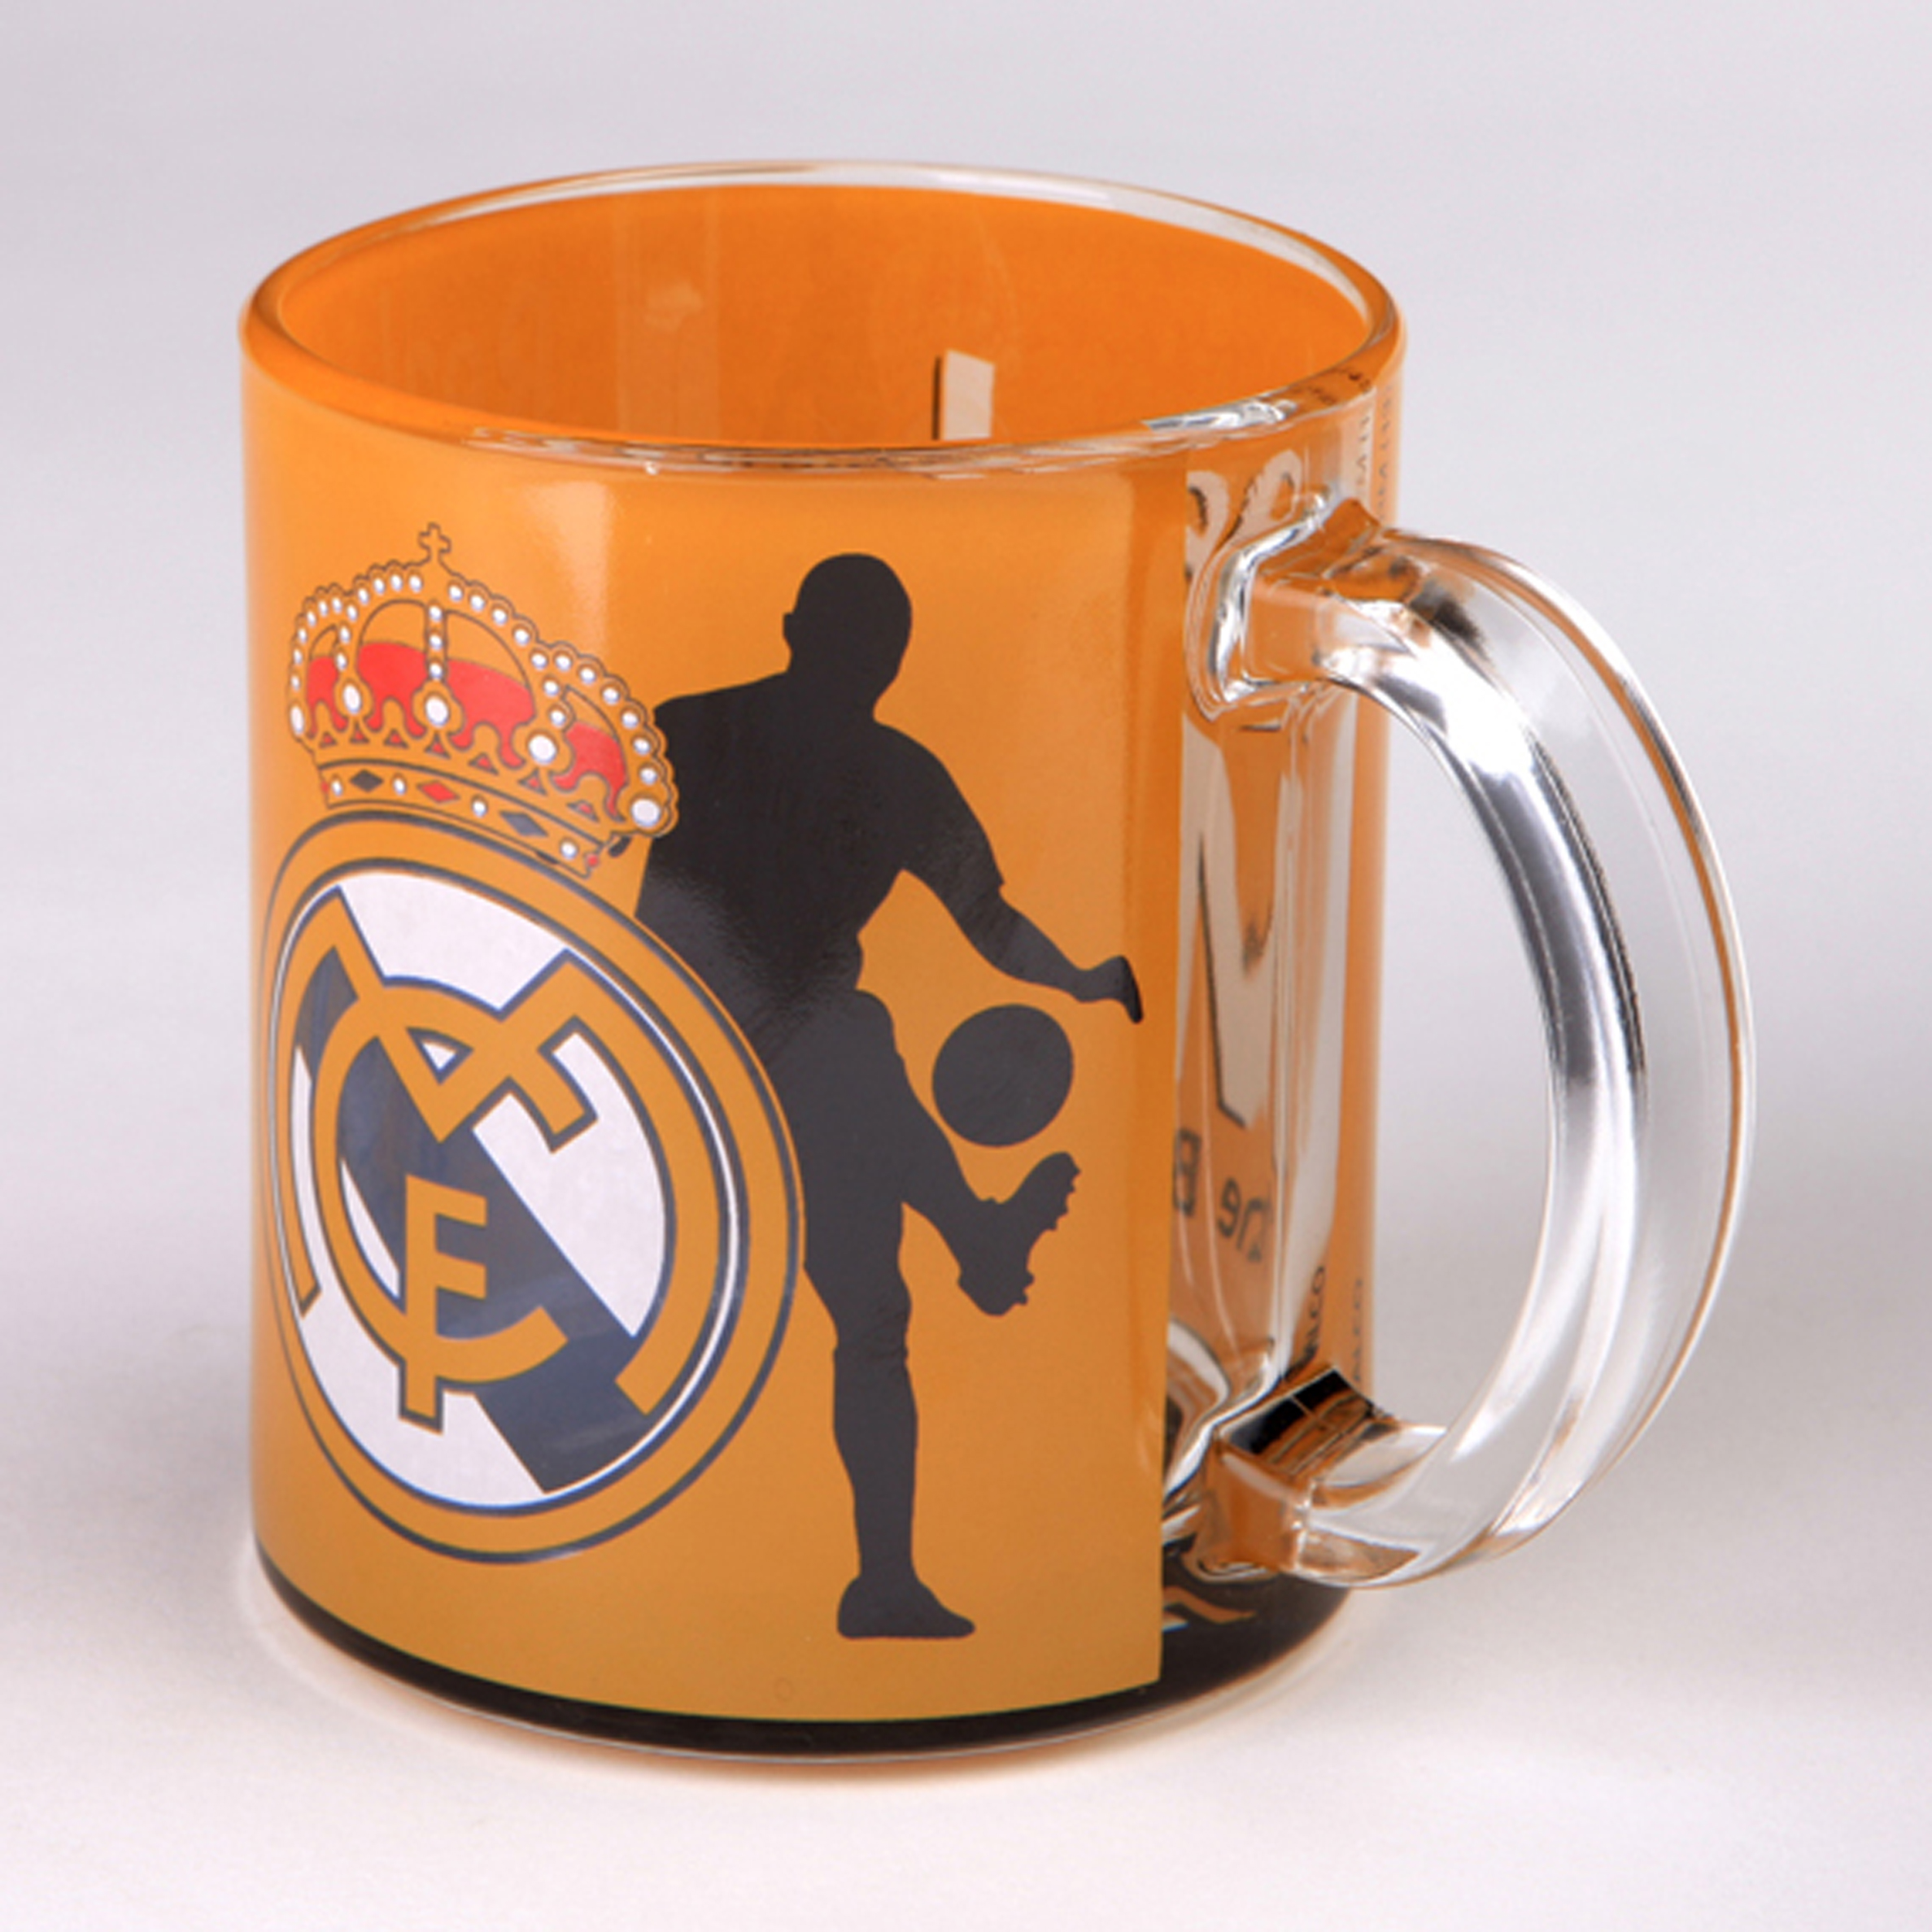 Real Madrid The Best Team In The World Glass Mug